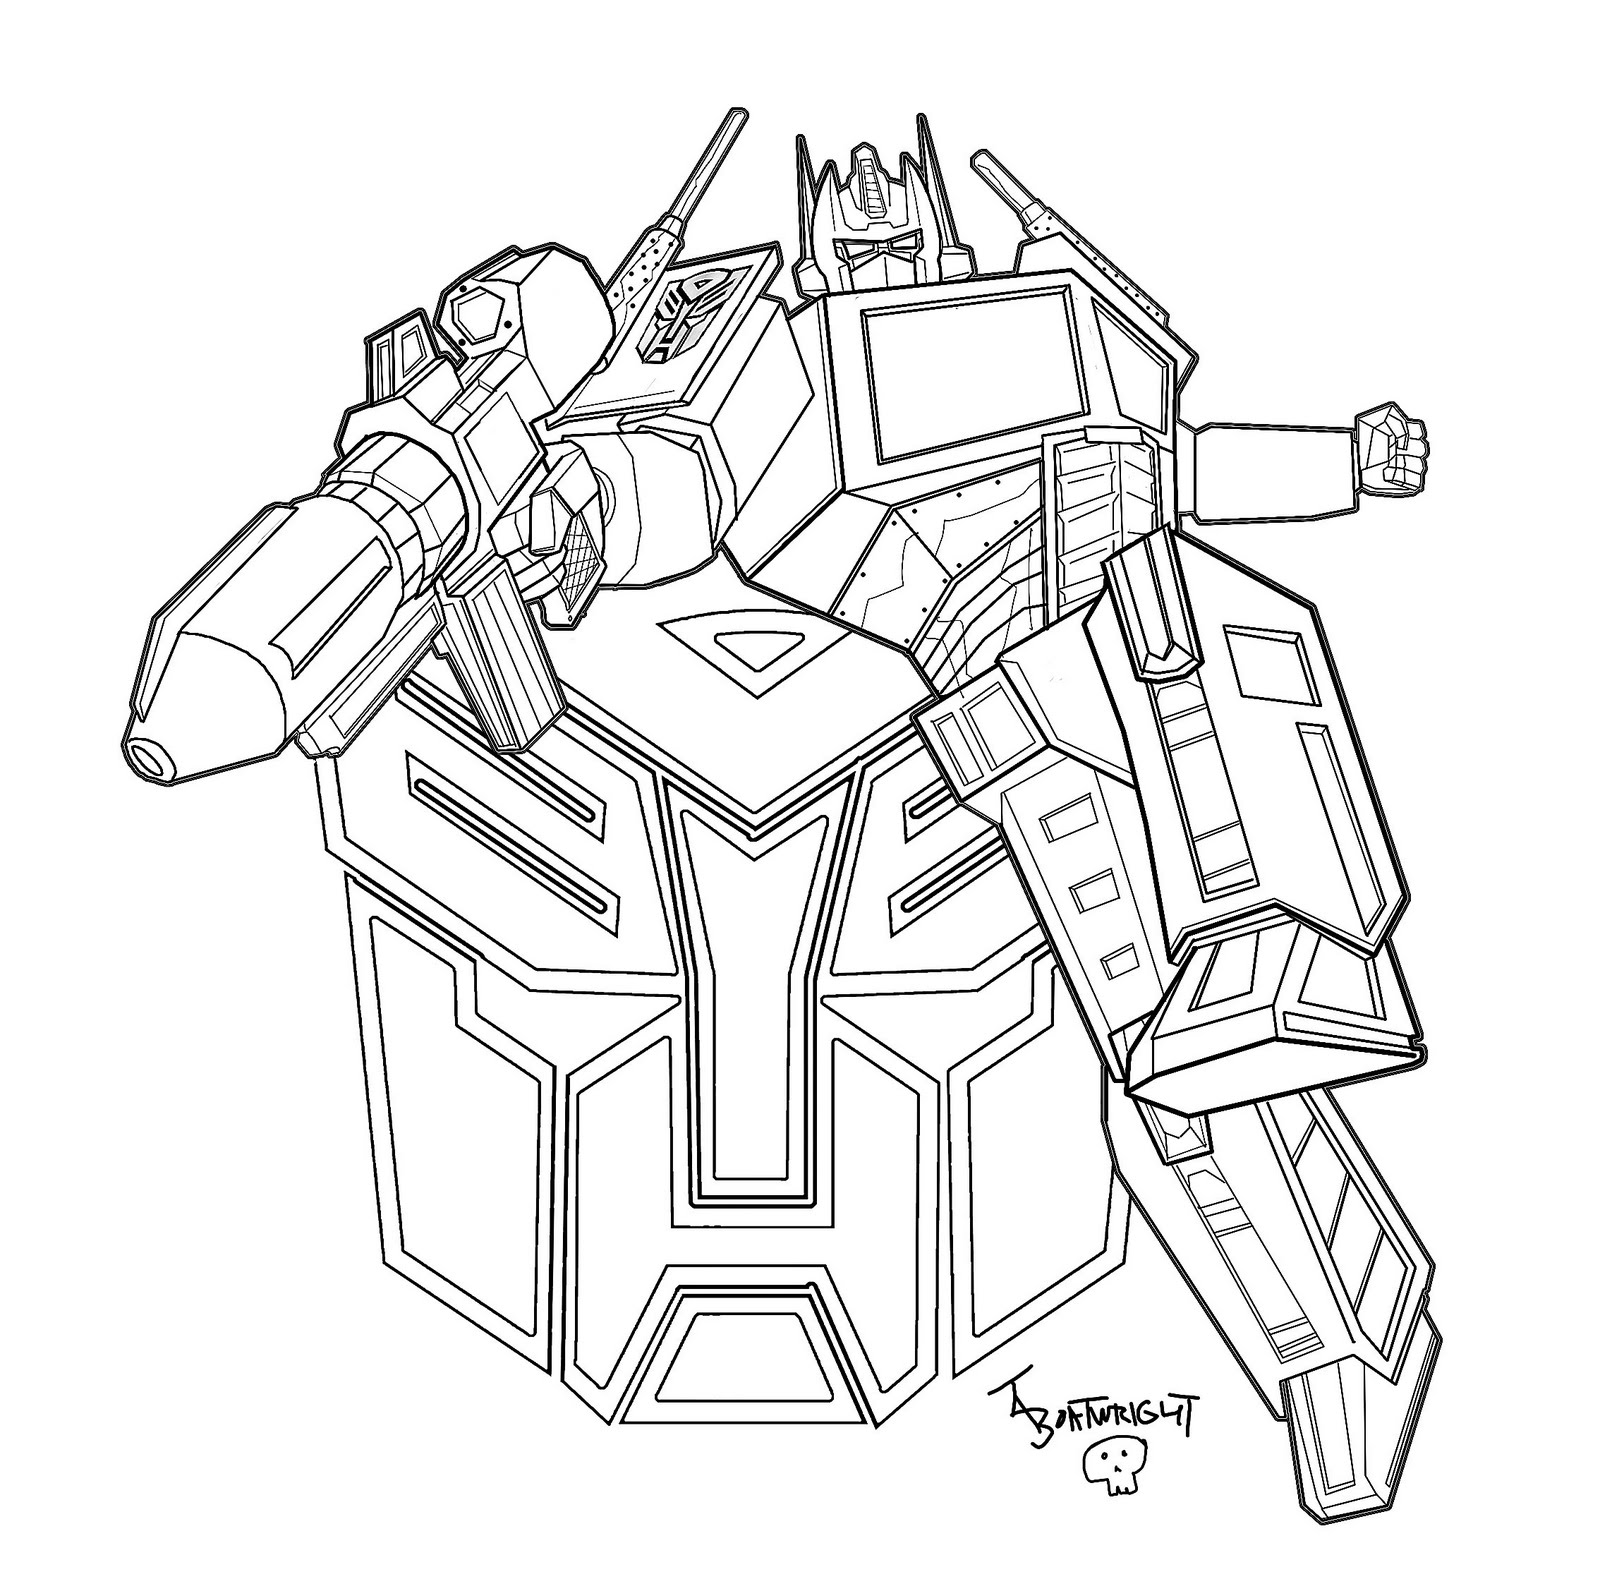 Optimus Prime Transformers Coloring Pages Gt Gt Disney Optimus Prime Coloring Book